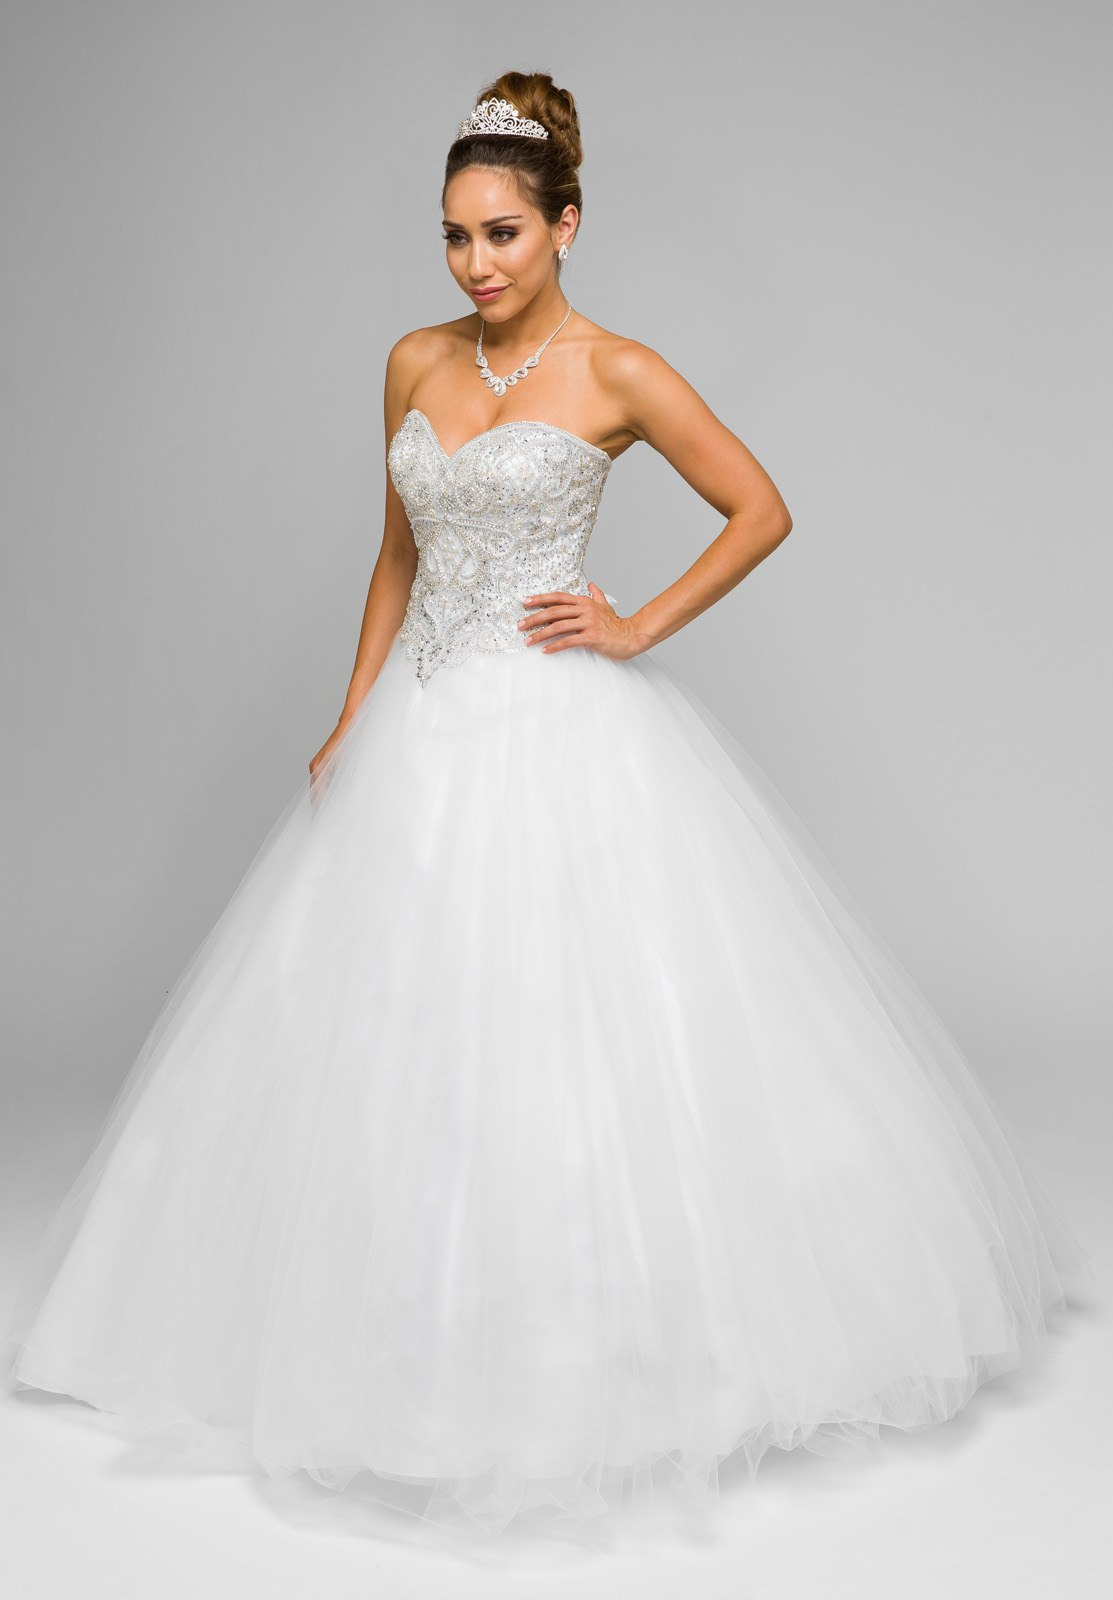 White Beaded Bodice Strapless Ball Gown Wedding Dress with Bolero ...